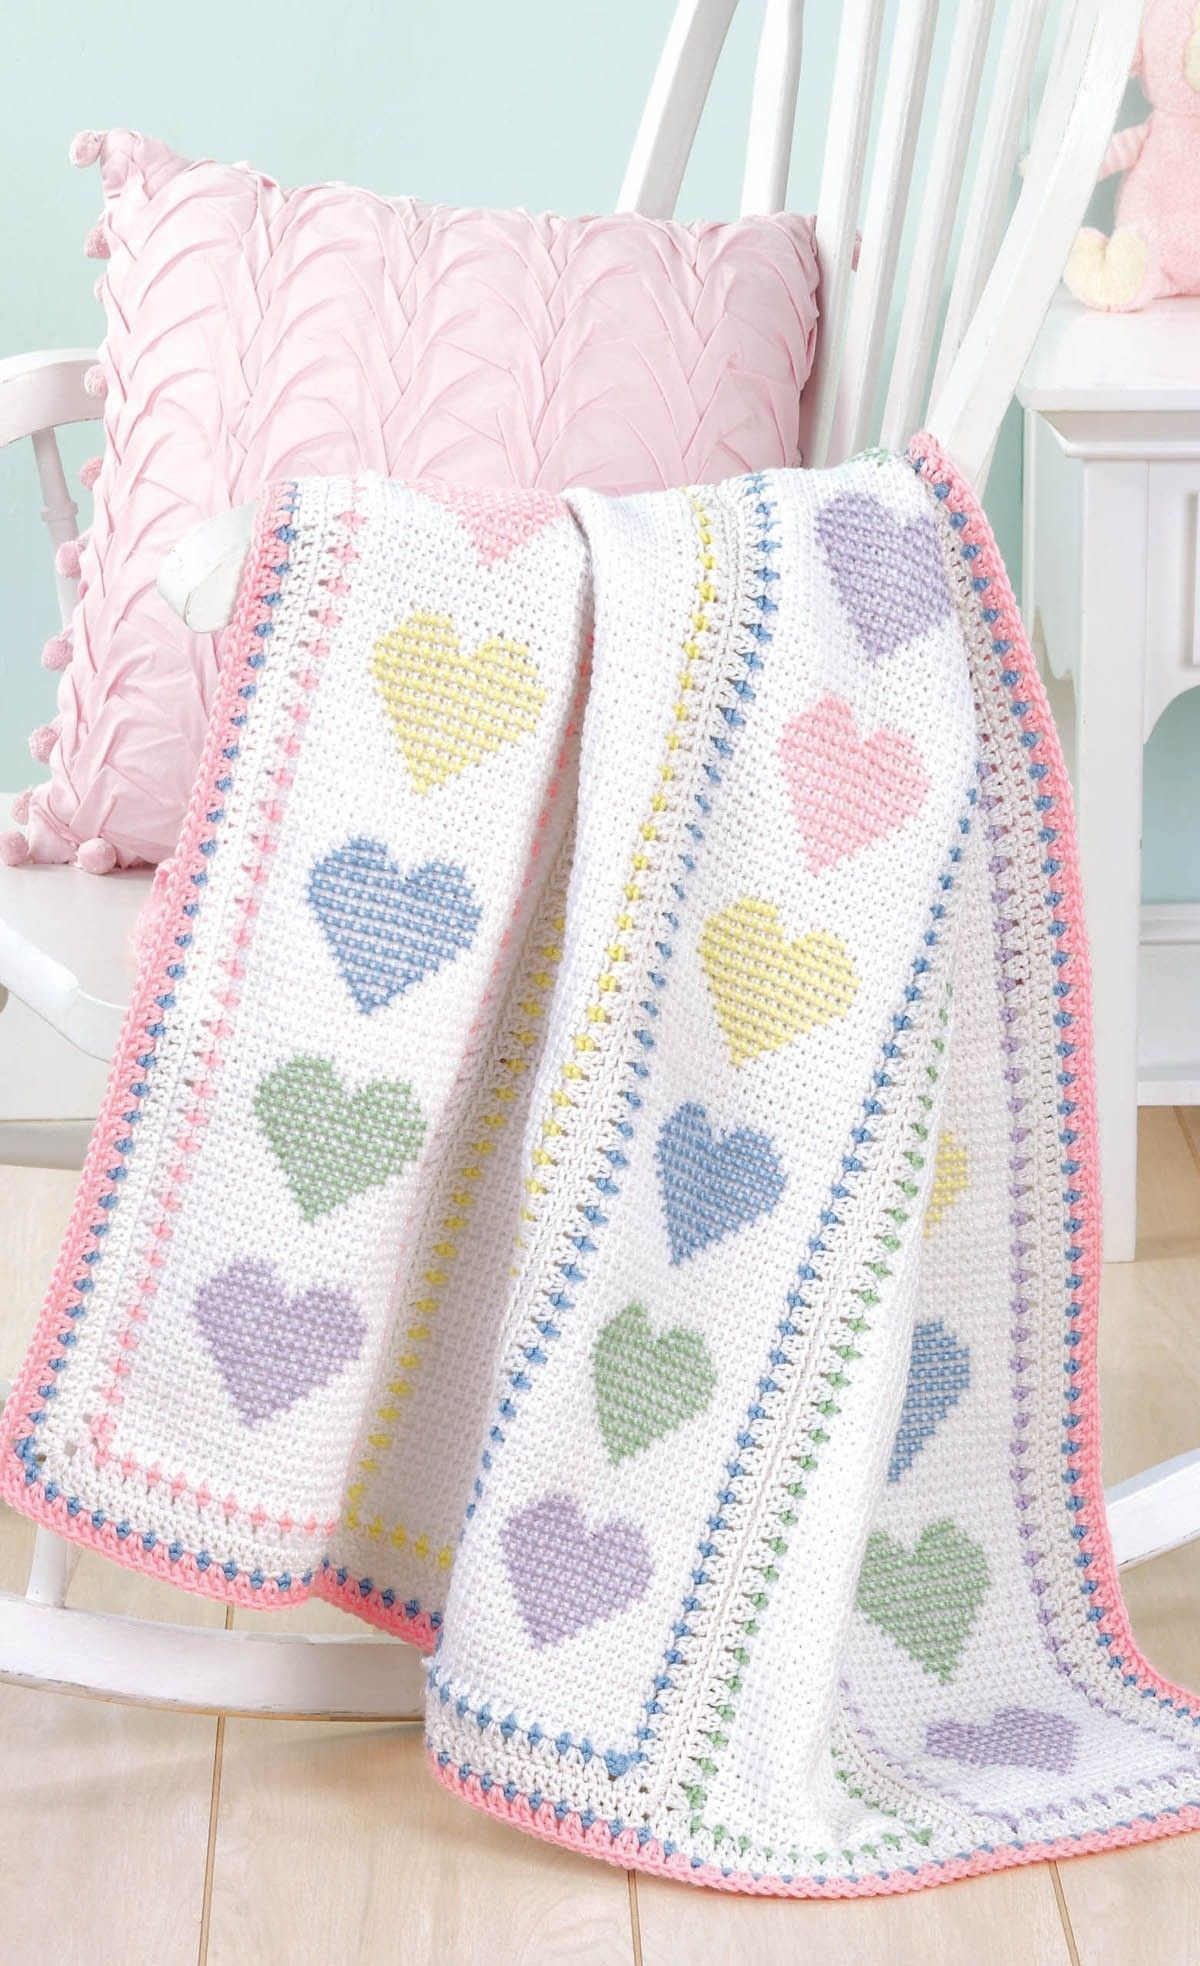 Blankets for Every Baby #pastelpattern